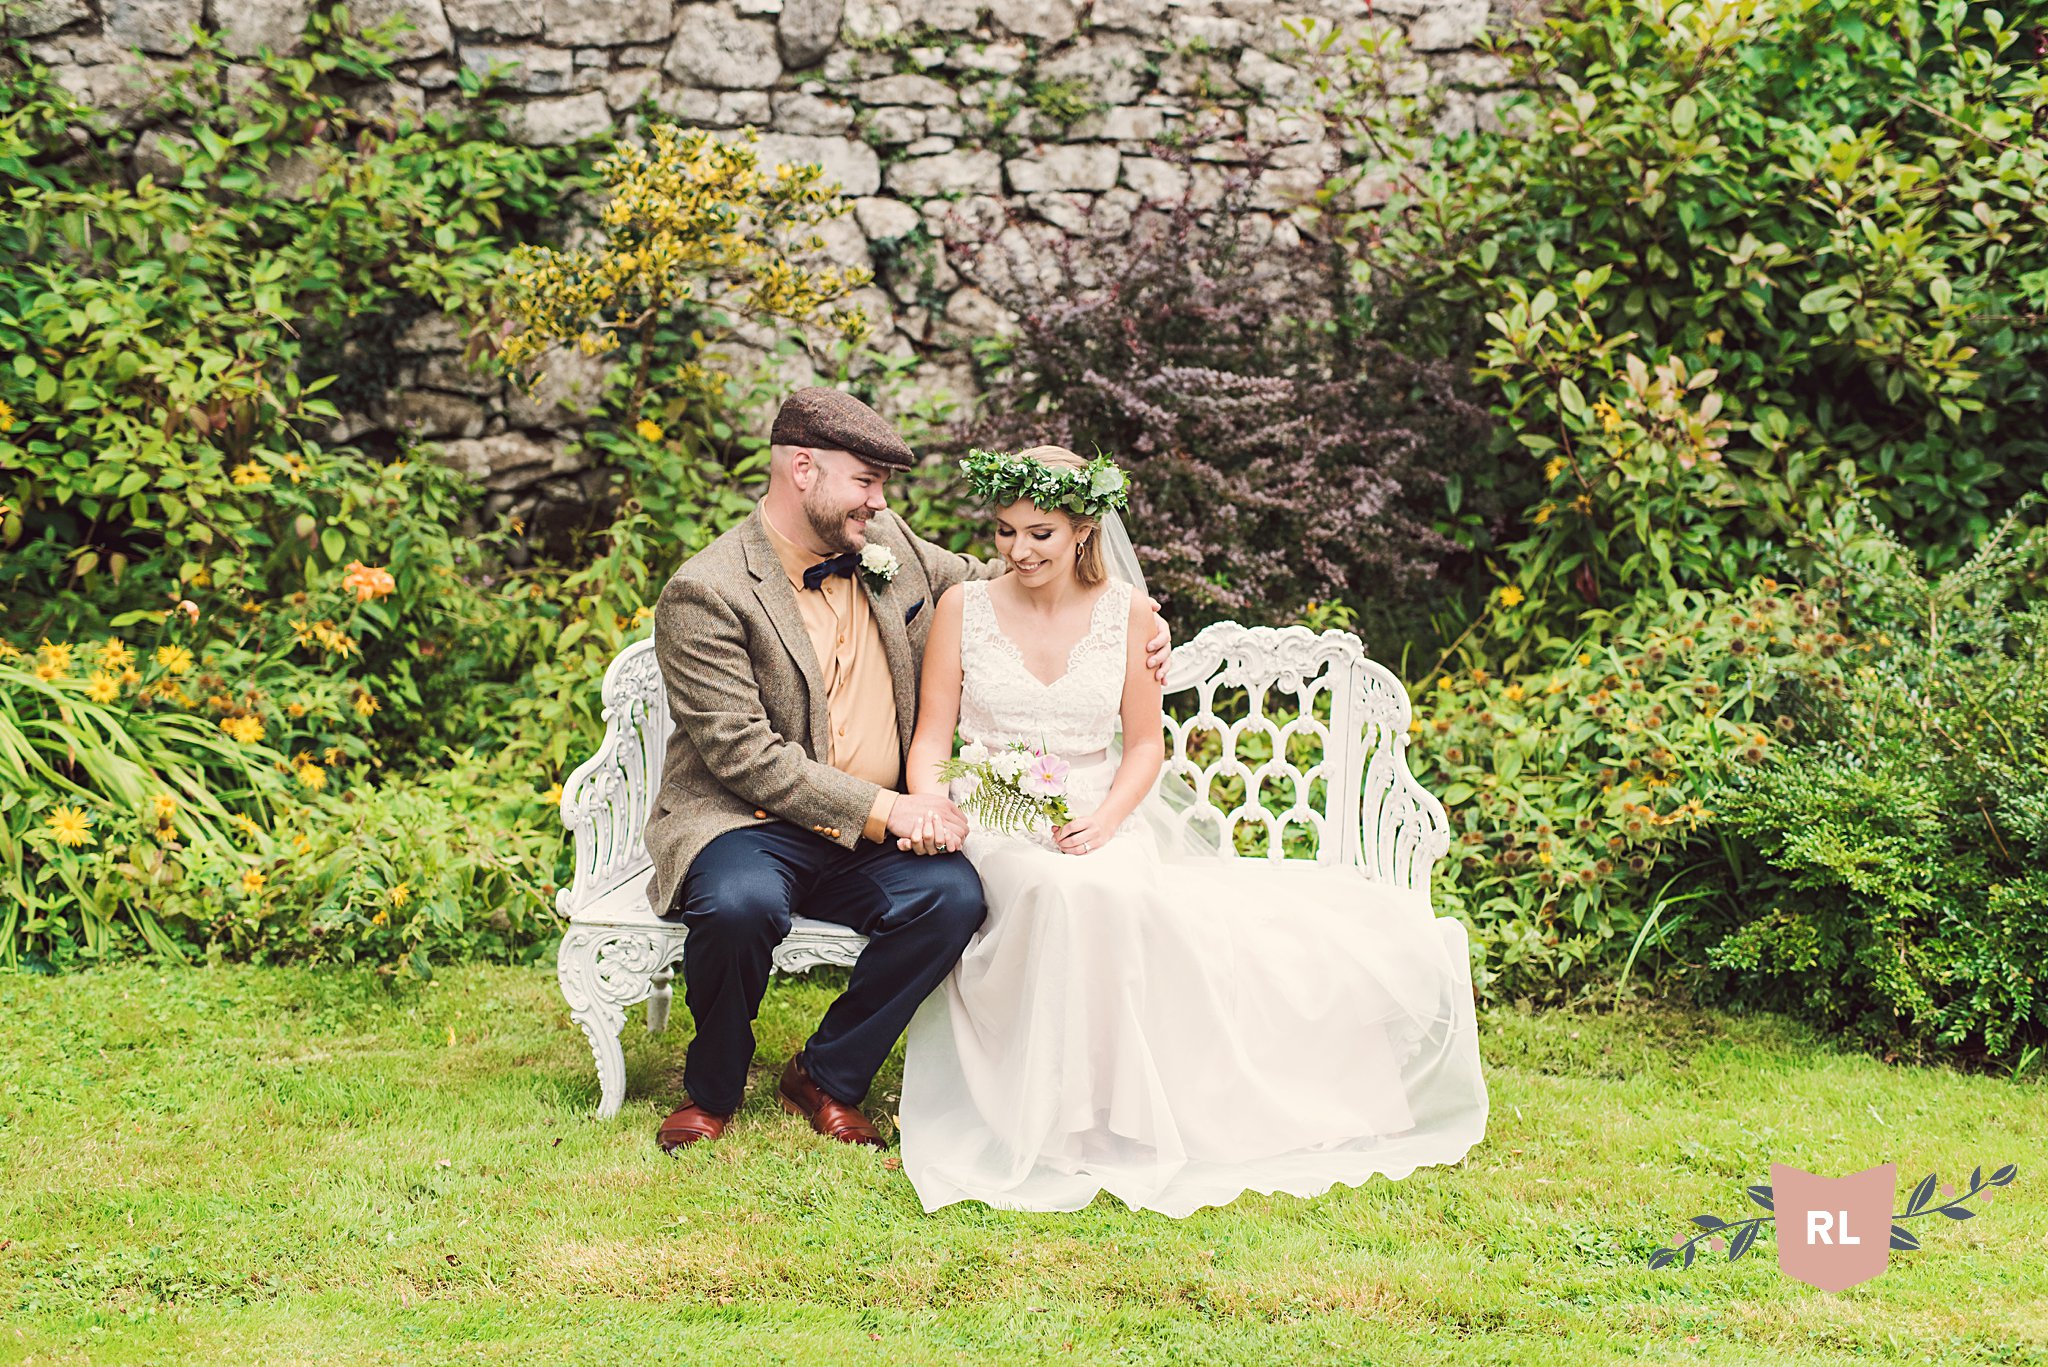 RossCastleWedding_Ireland_1007.jpg